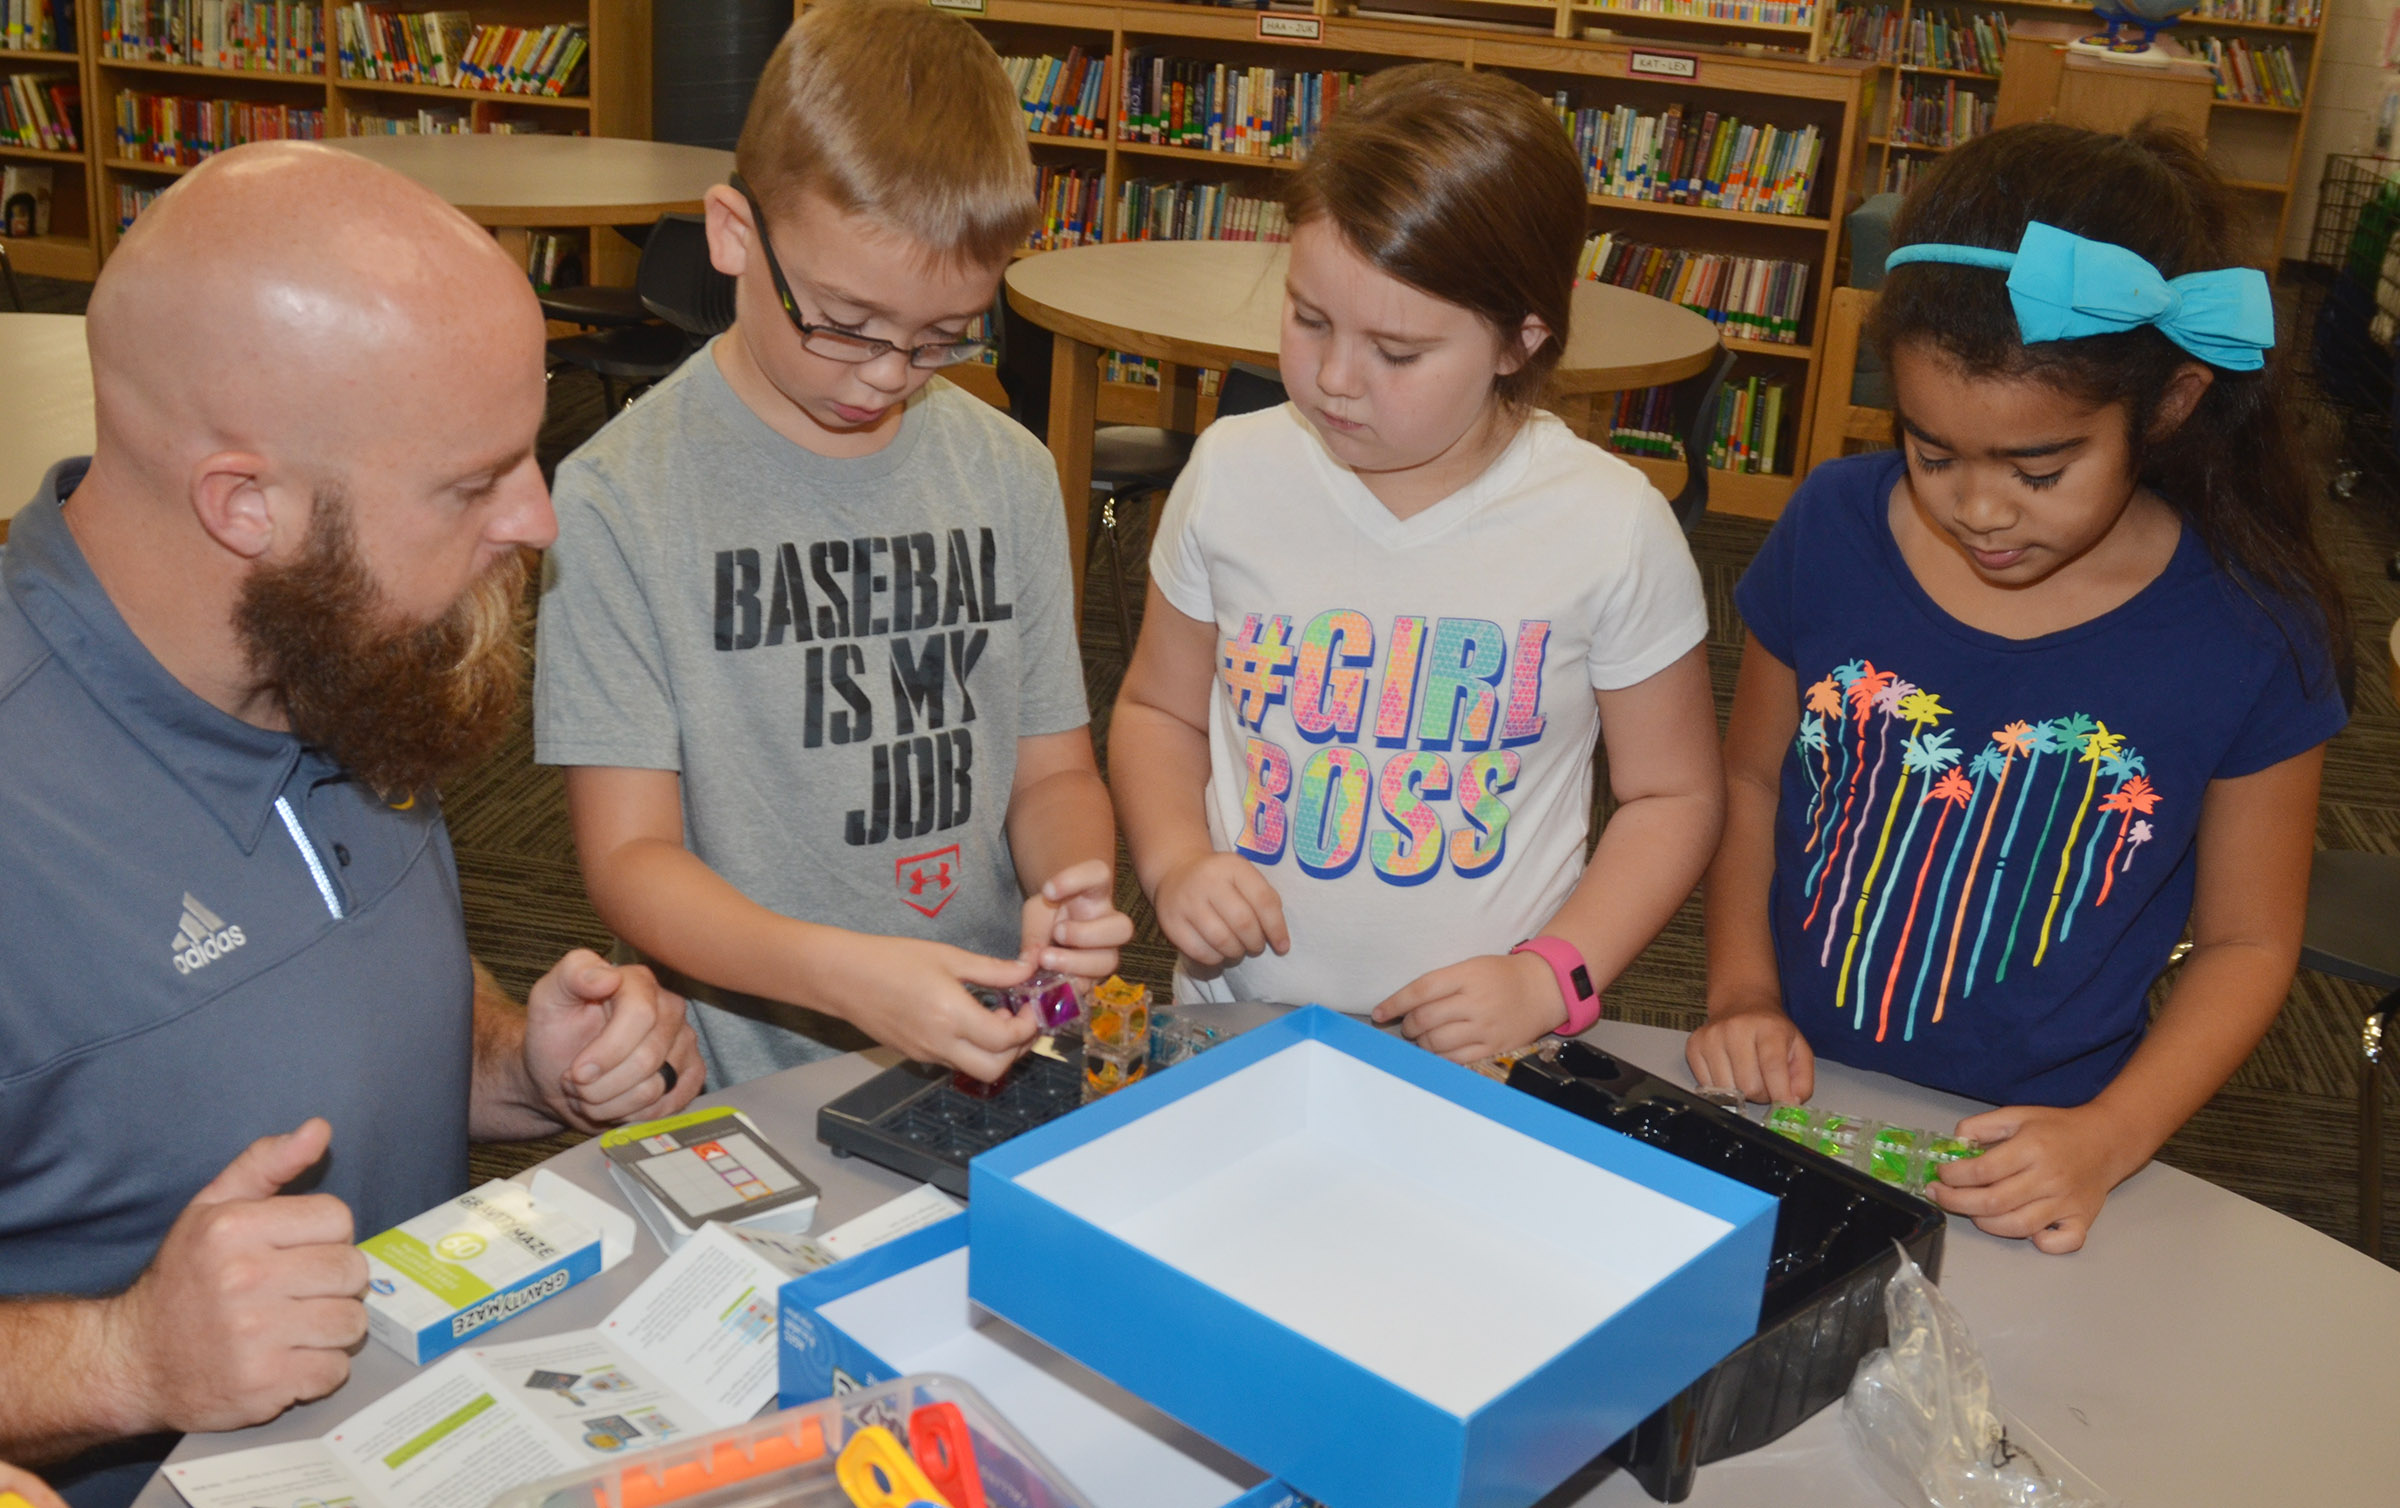 Chad Forsyth, an operations manager at Amazon, plays with STEM toys with, from left, fourth-graders Cameron Estes and Maylee Wilds and third-grader Sophia Santos.